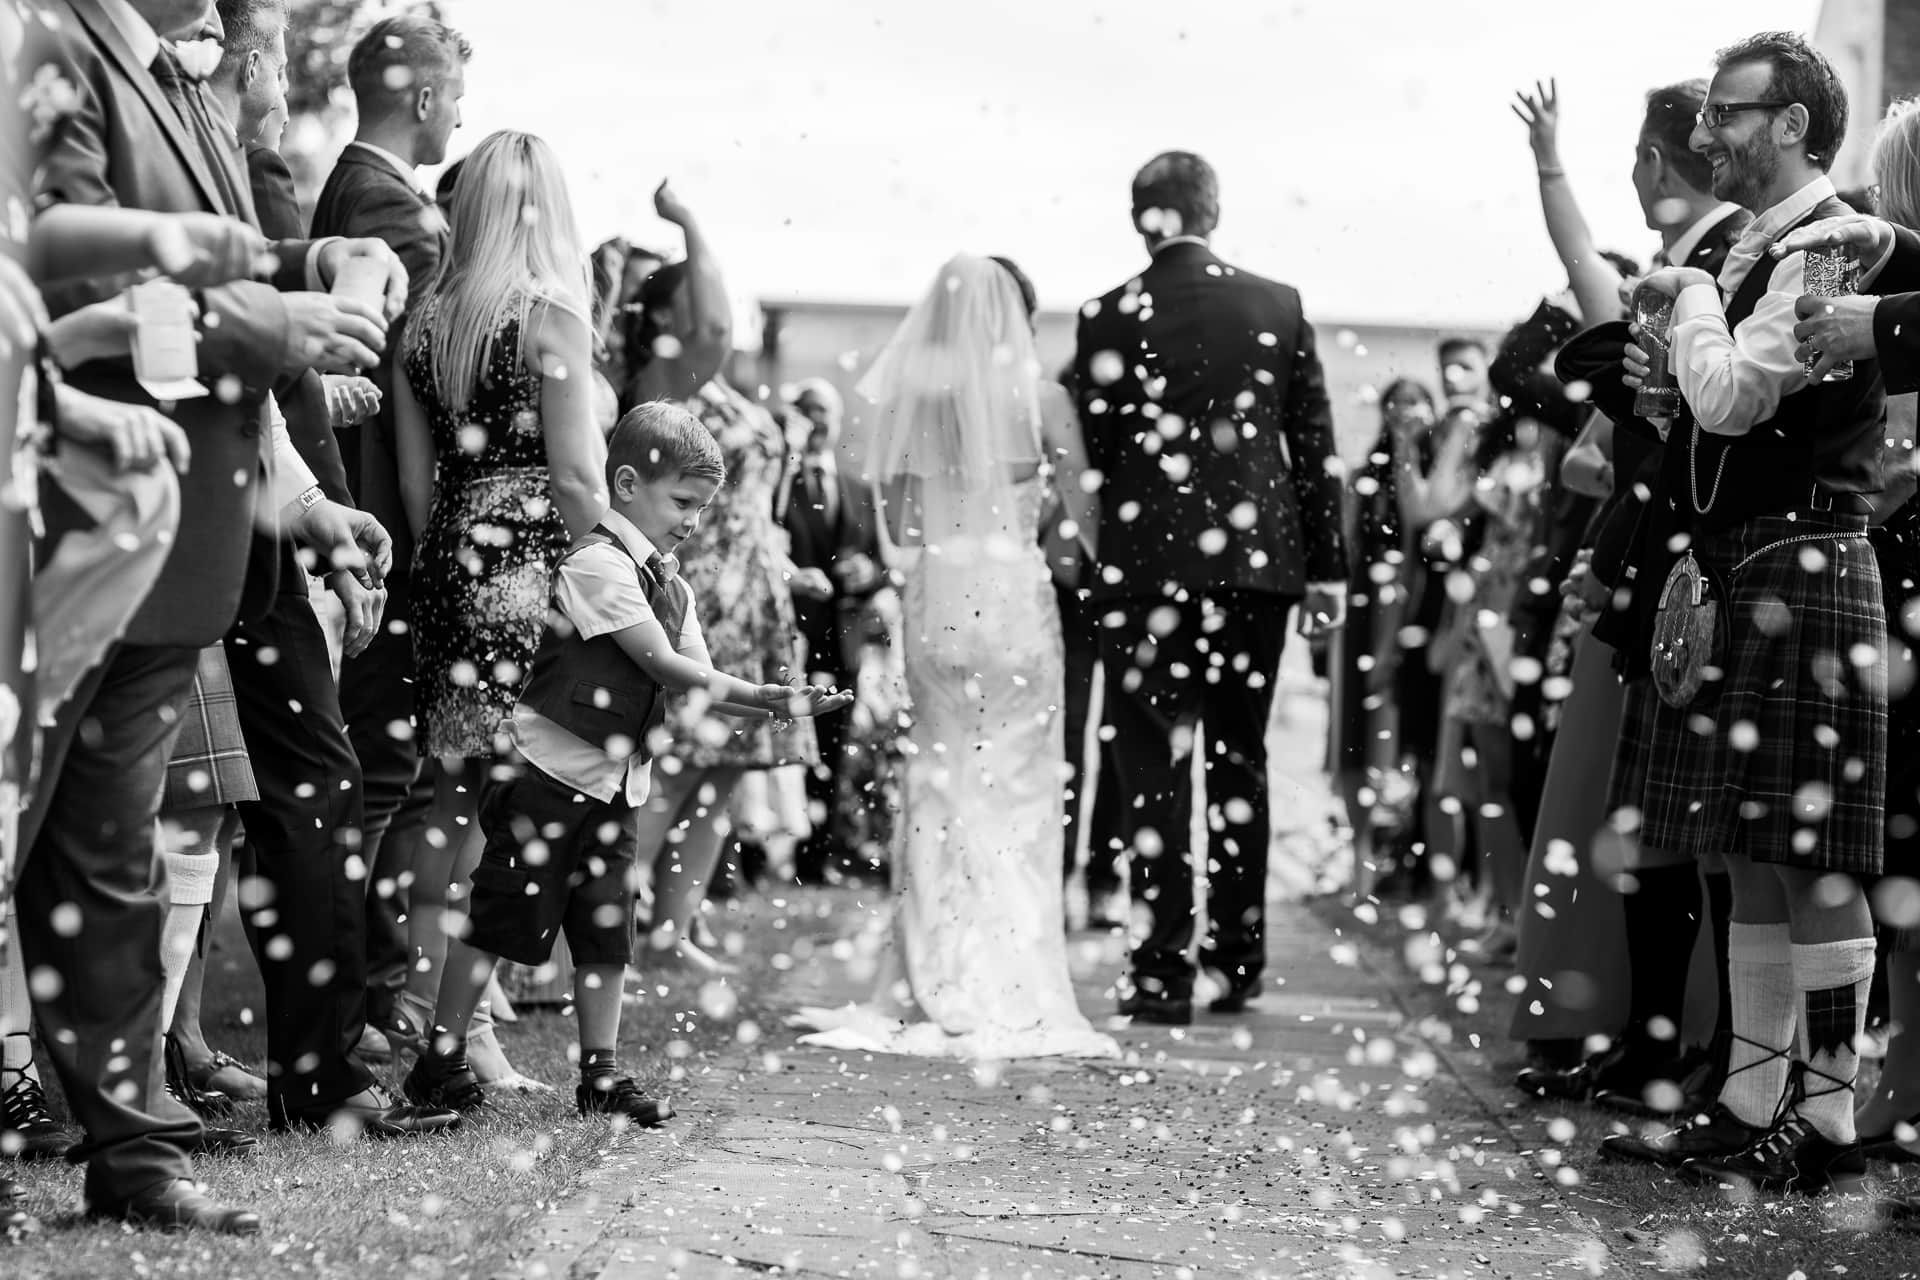 Edinburgh Wedding Photographer and Videographer Scotland - Confetti photo